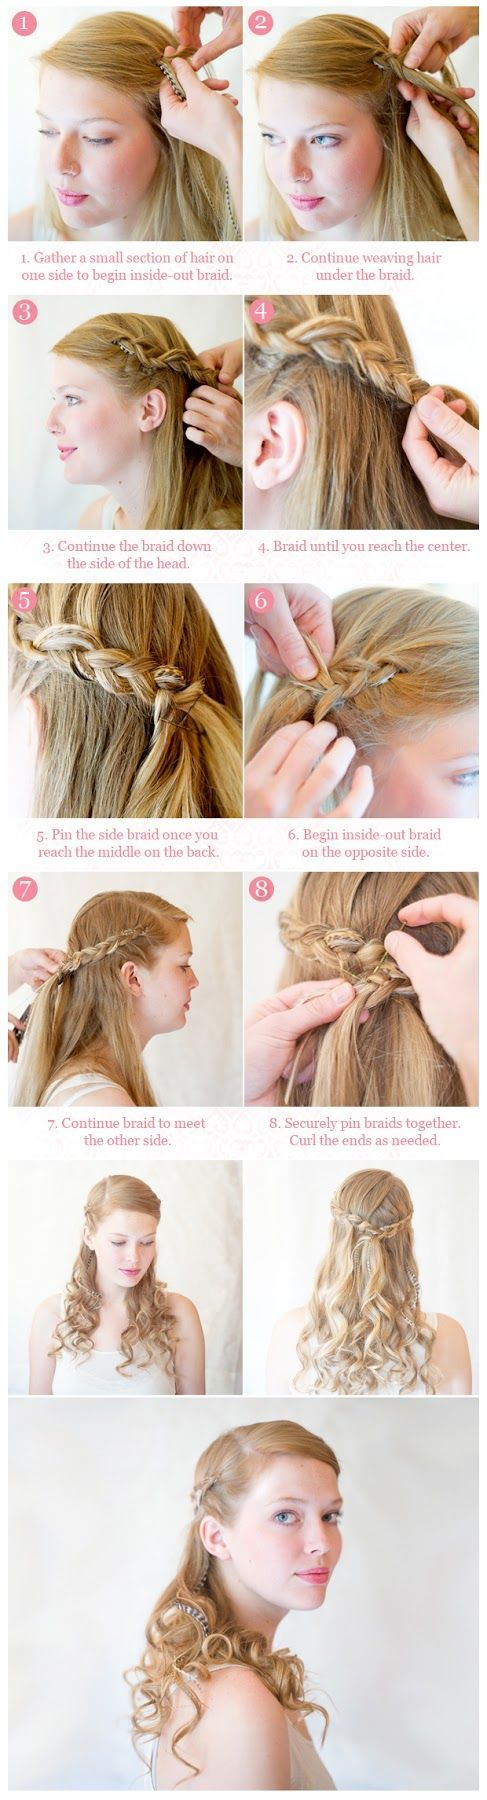 120 best images about hair on pinterest | side braid hairstyles